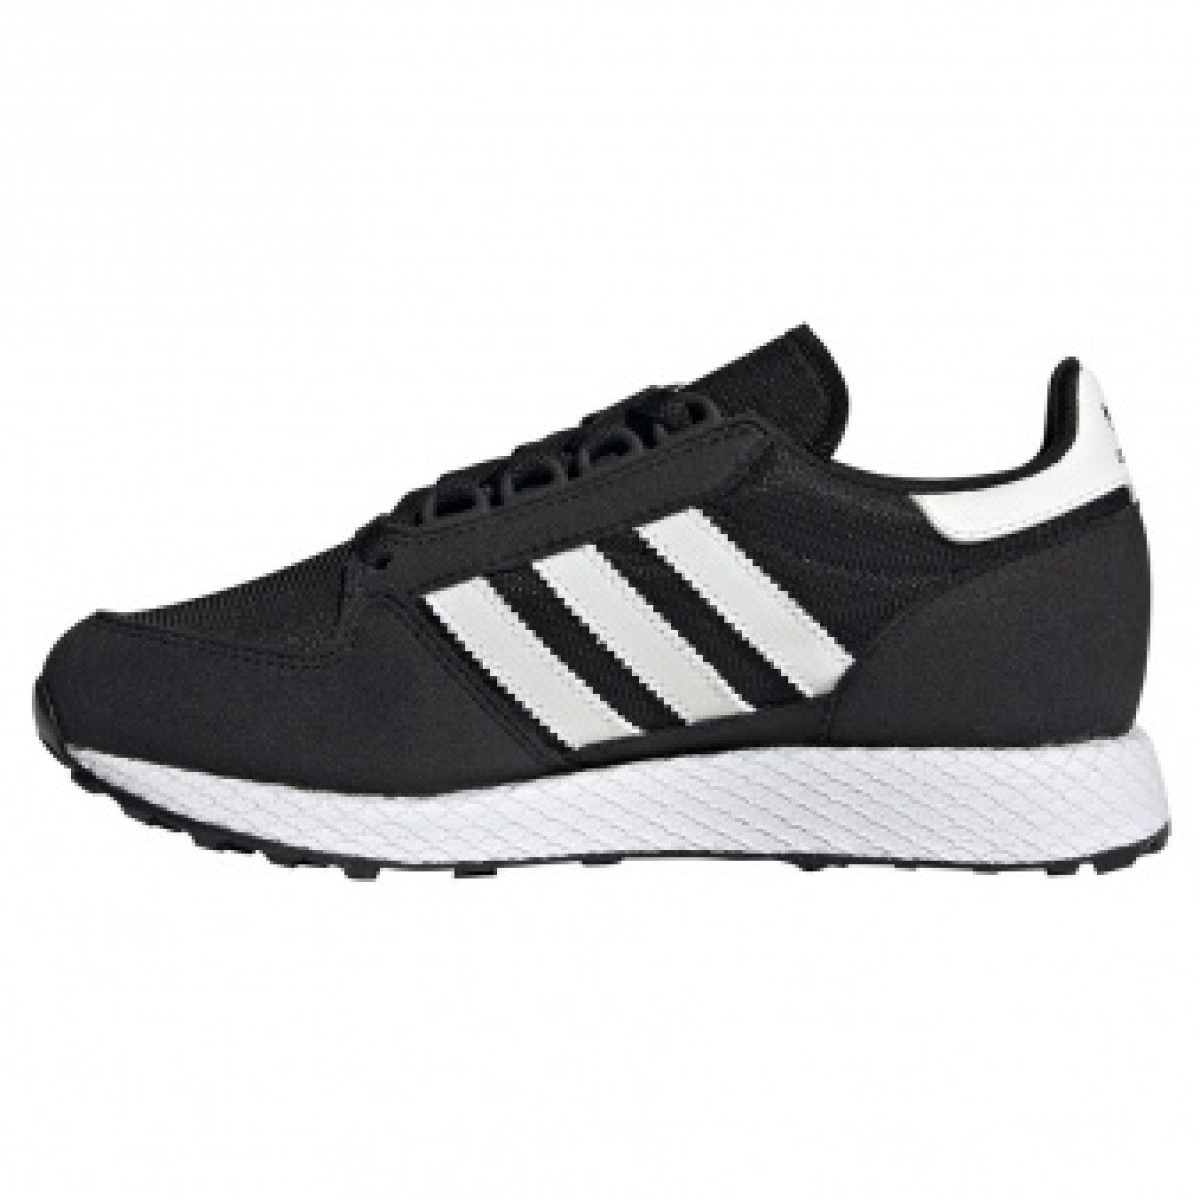 Sapatos Adidas Originals Forest Grove Jr EE6557 preto